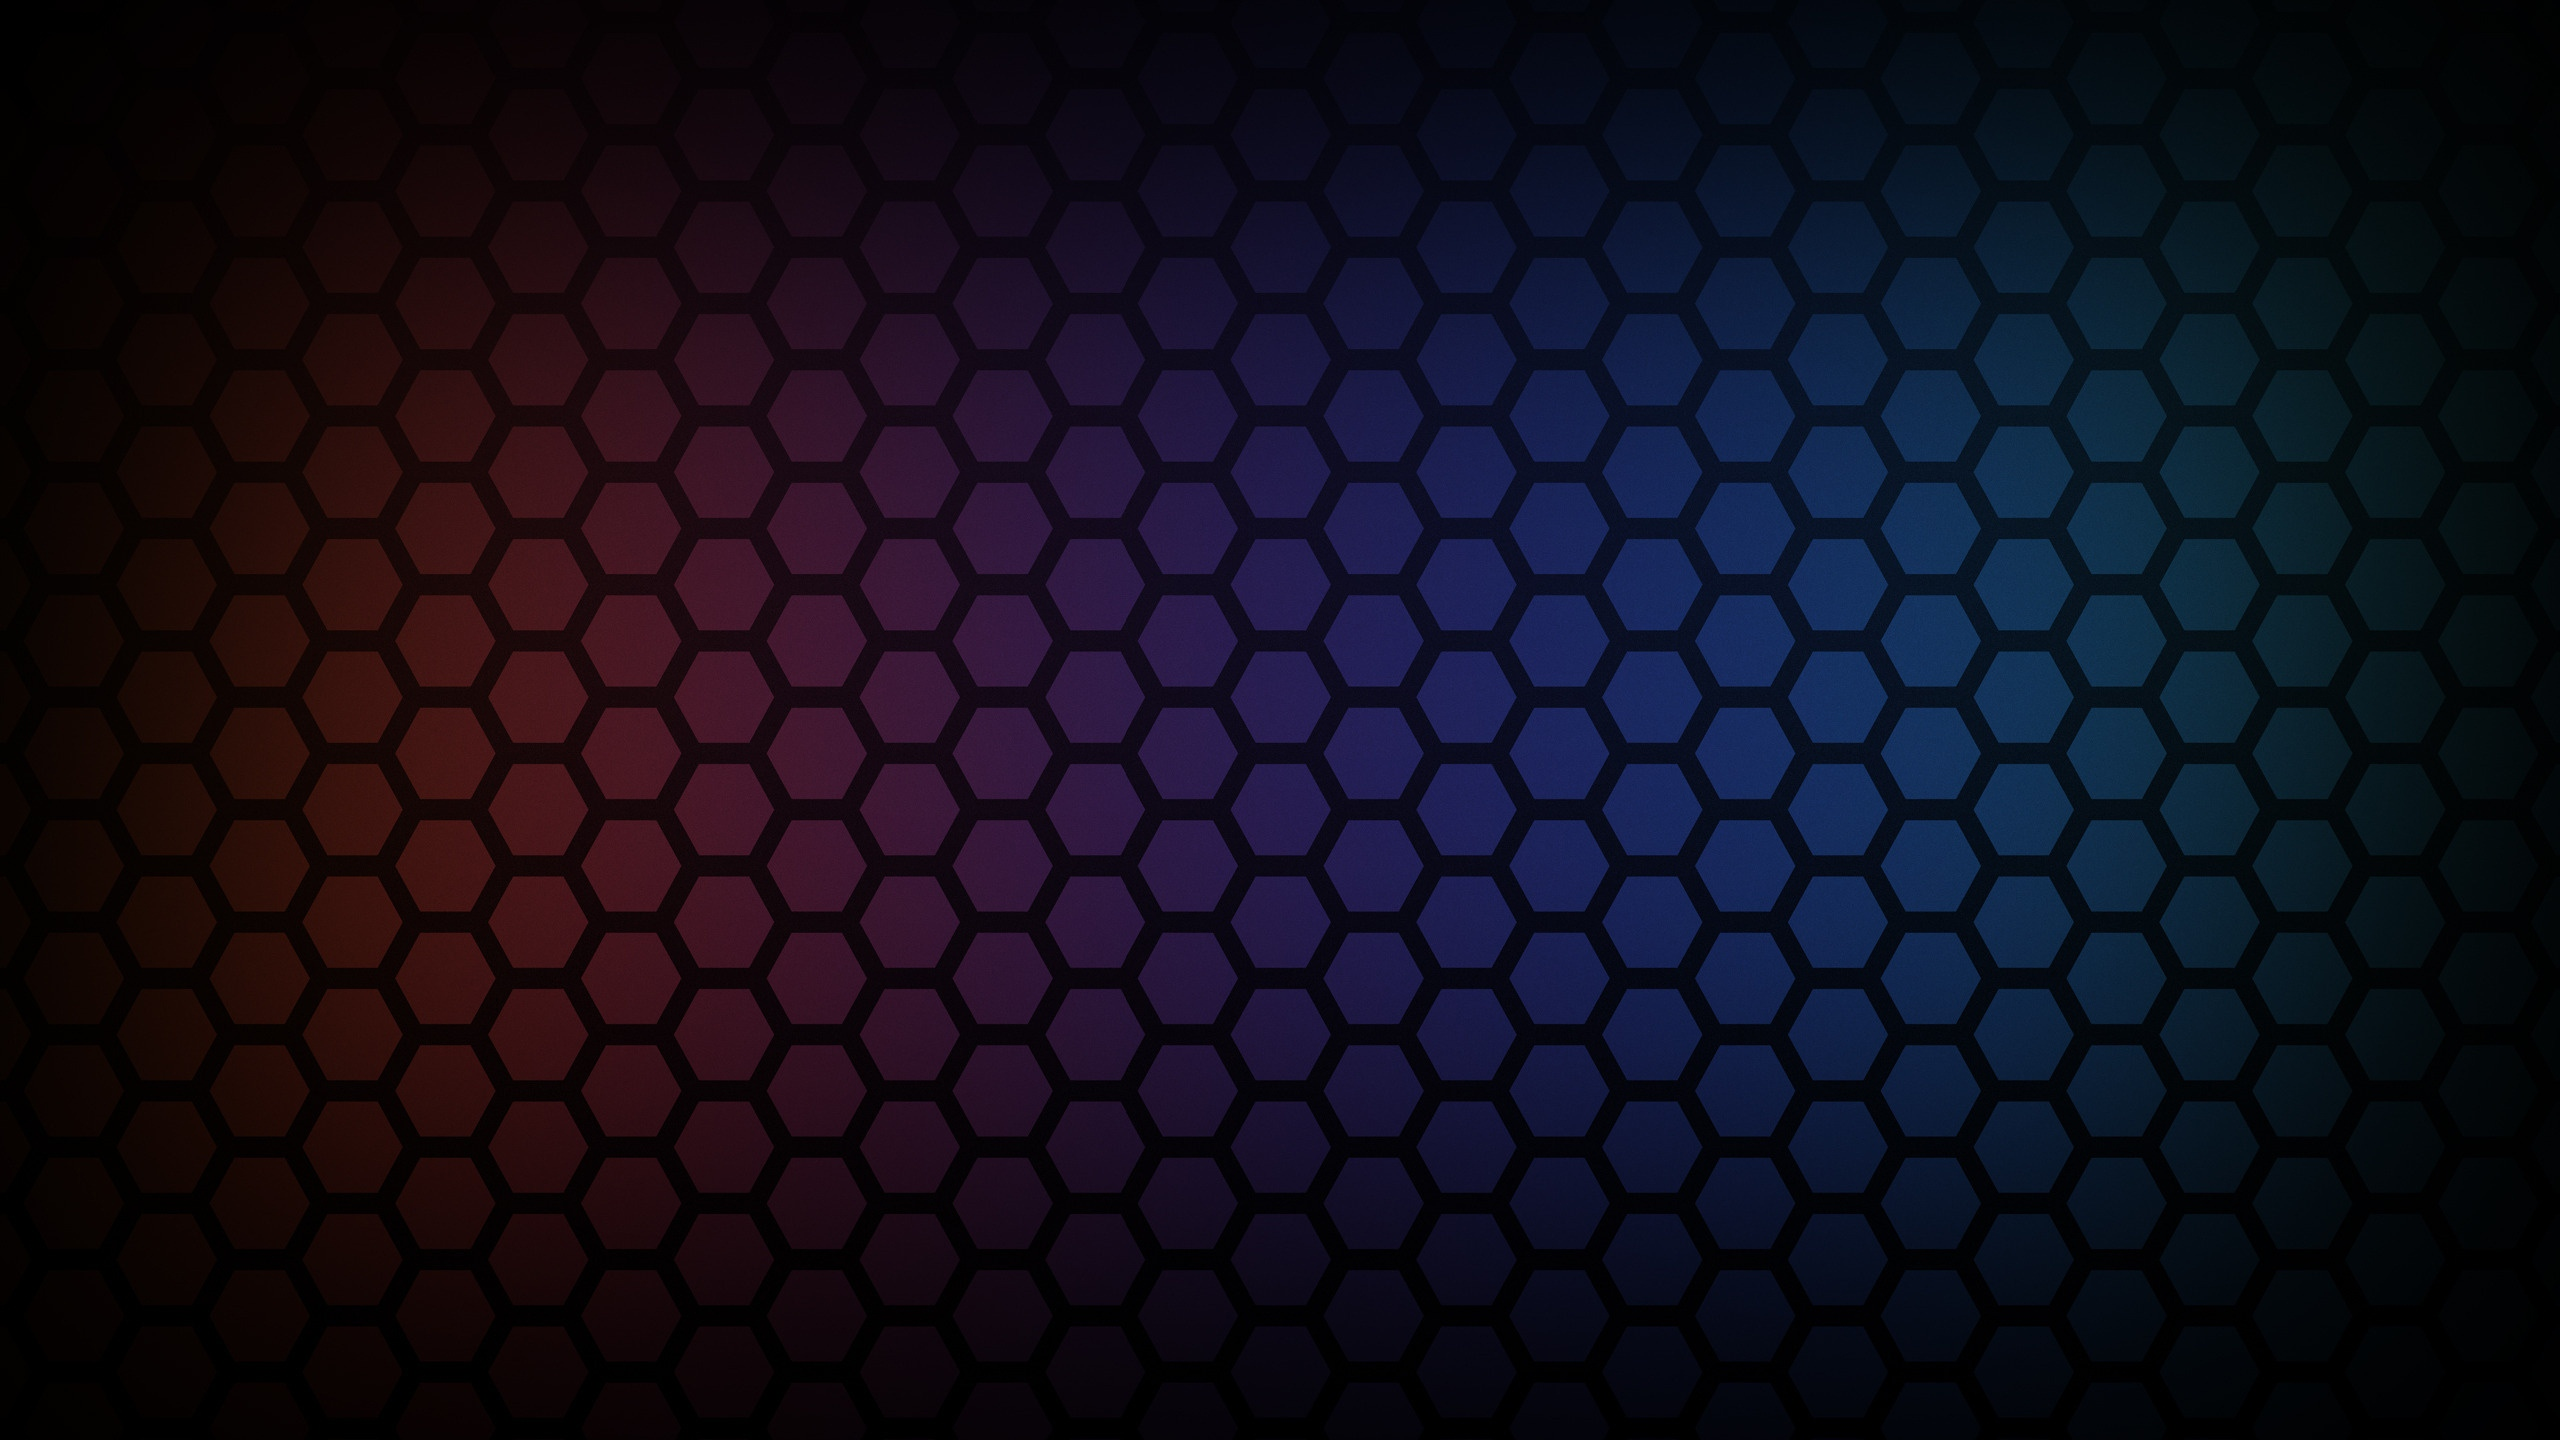 Hexagon Wallpaper Background 4925 2560x1440 - uMad com